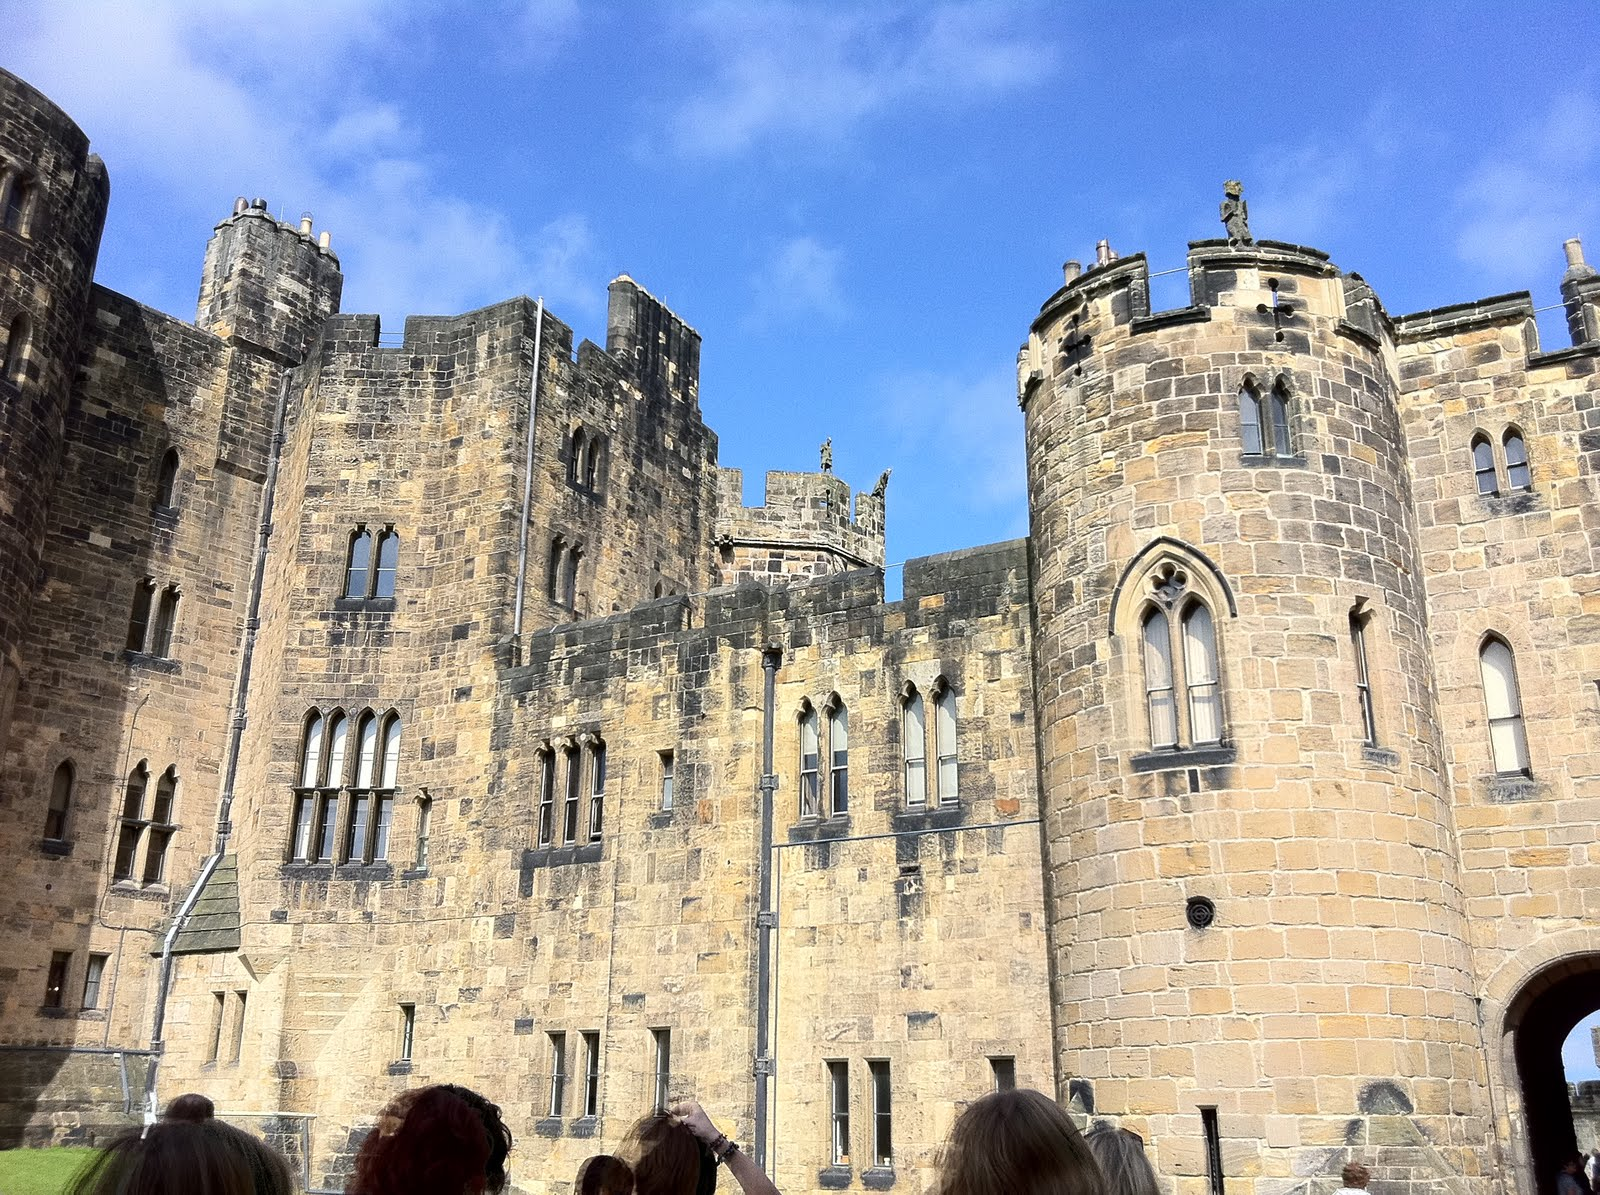 Floor to ceiling books a trip to alnwick castle the poison diaries the poison diaries id also like to thank the kdot team who worked tirelessly before and during the event to ensure that we had the very best time fandeluxe Epub